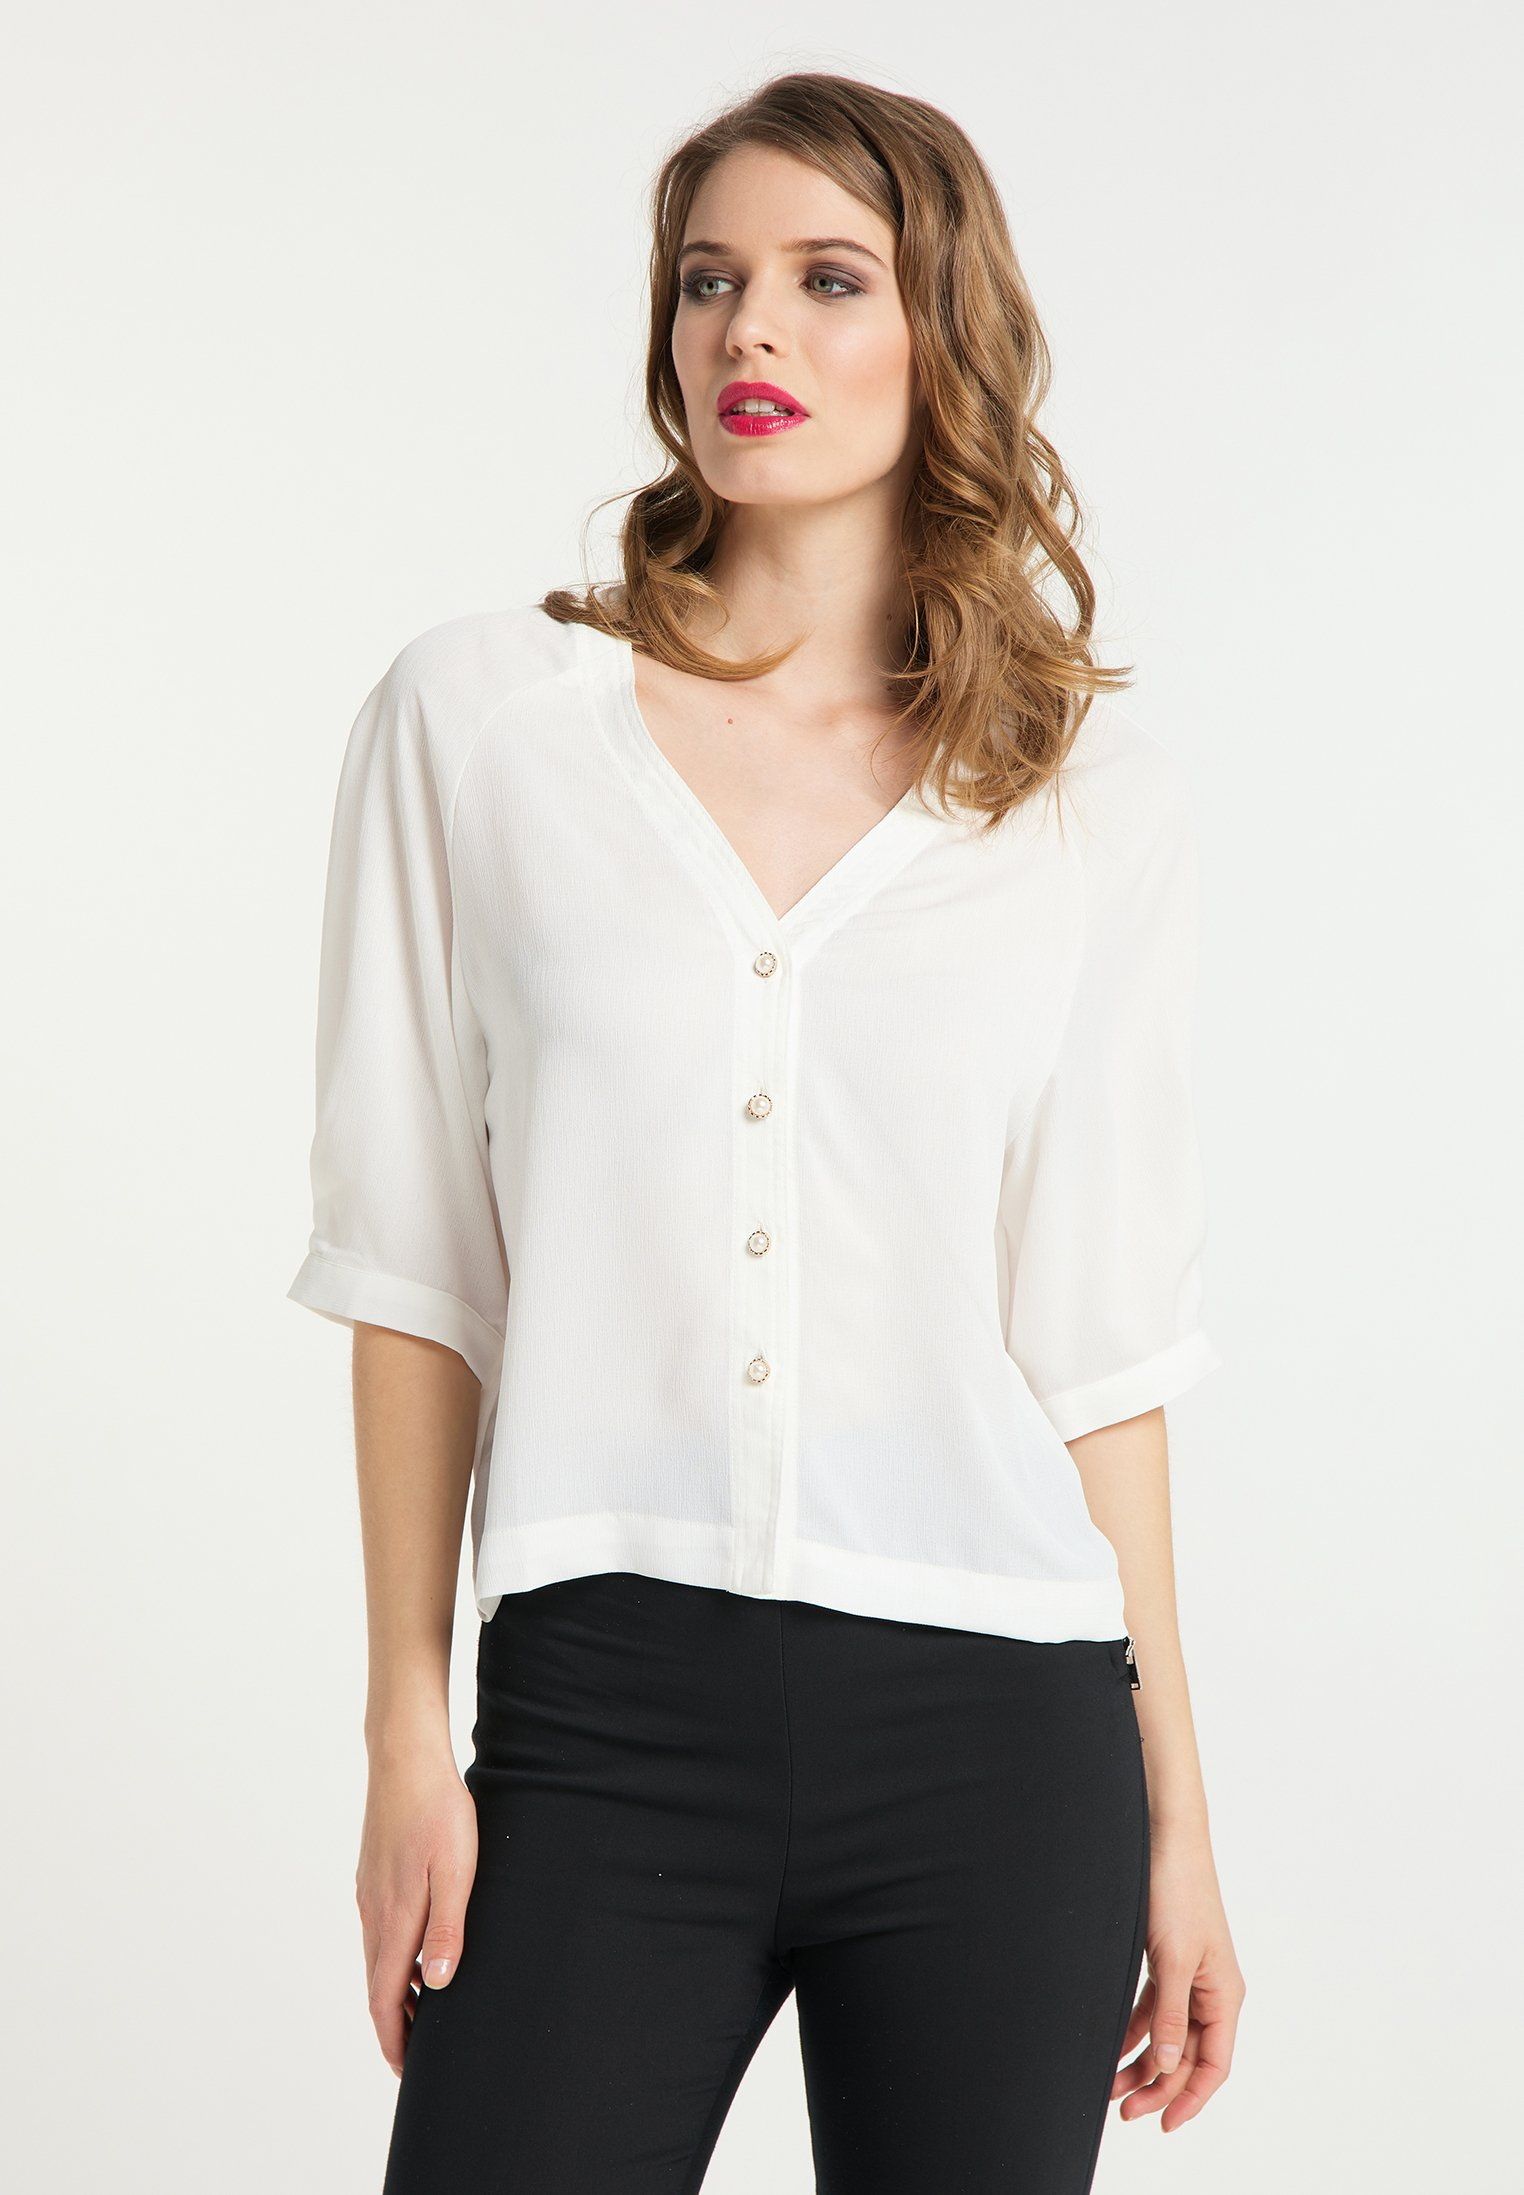 Inexpensive Women's Clothing faina Blouse weiss E2AWT9lo9